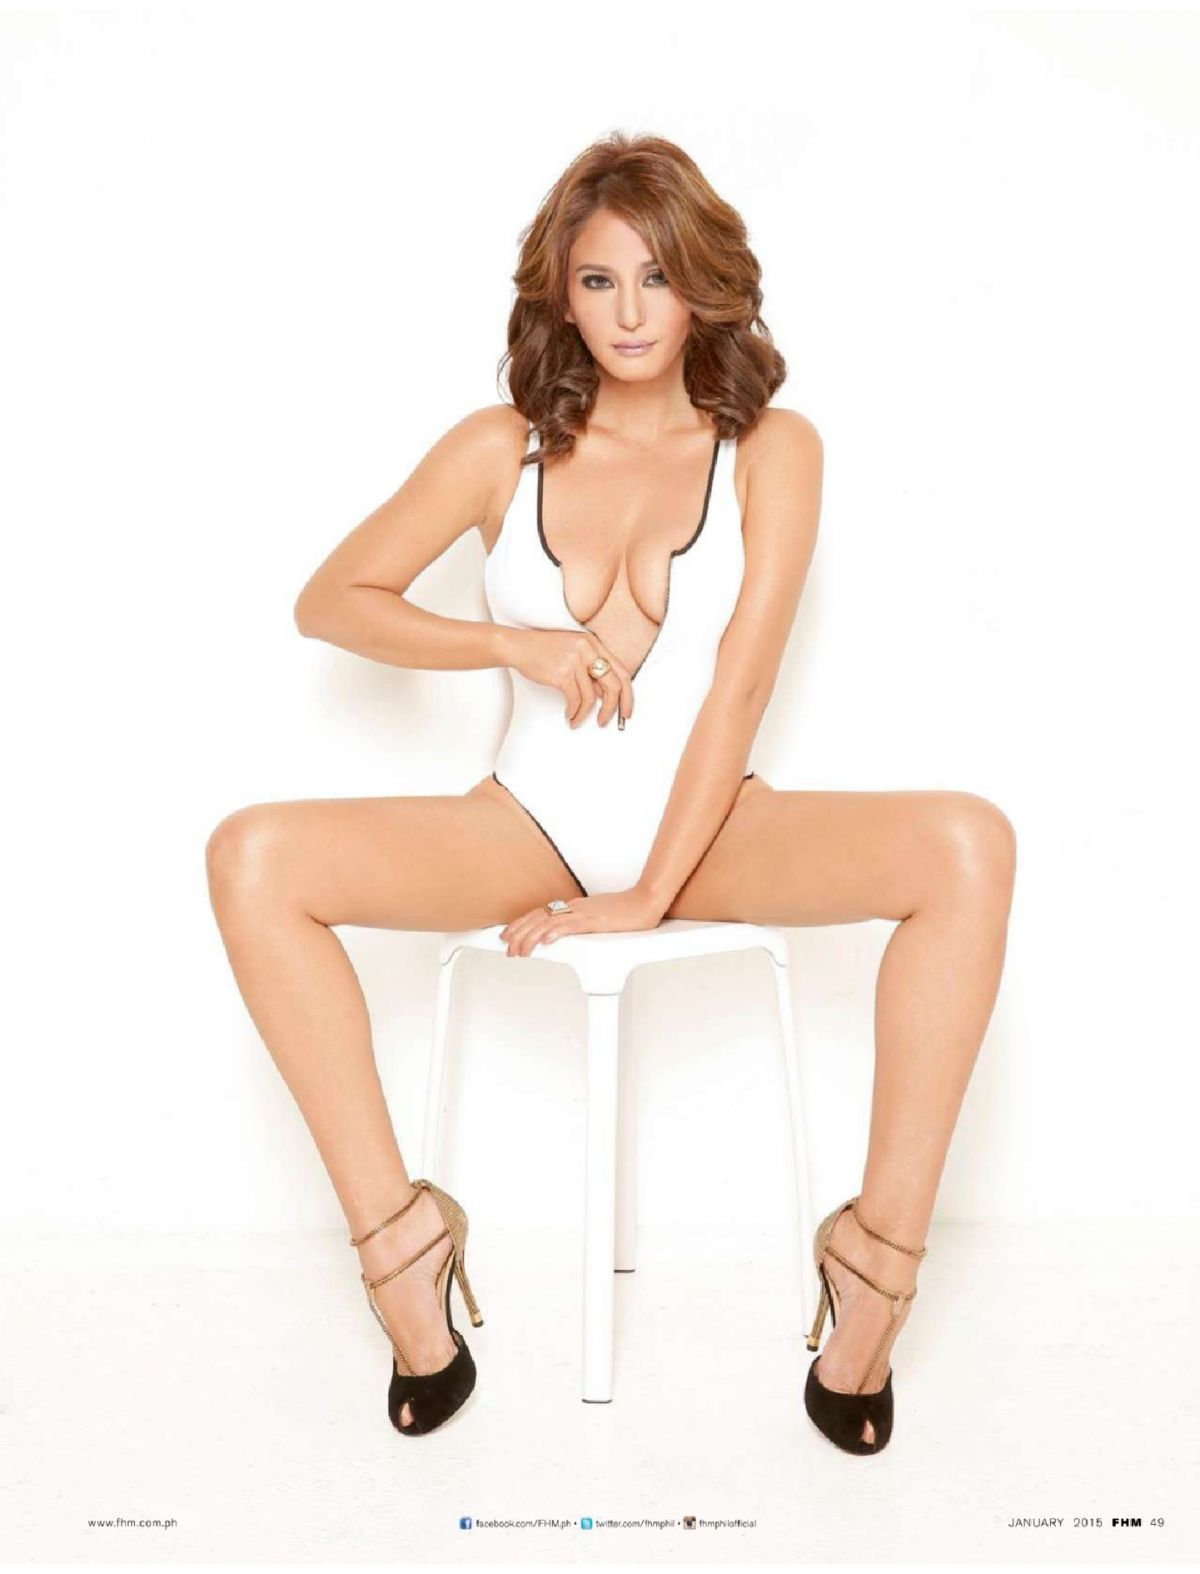 Katrina Halili In FHM Philippines January 2015 - Celebzz